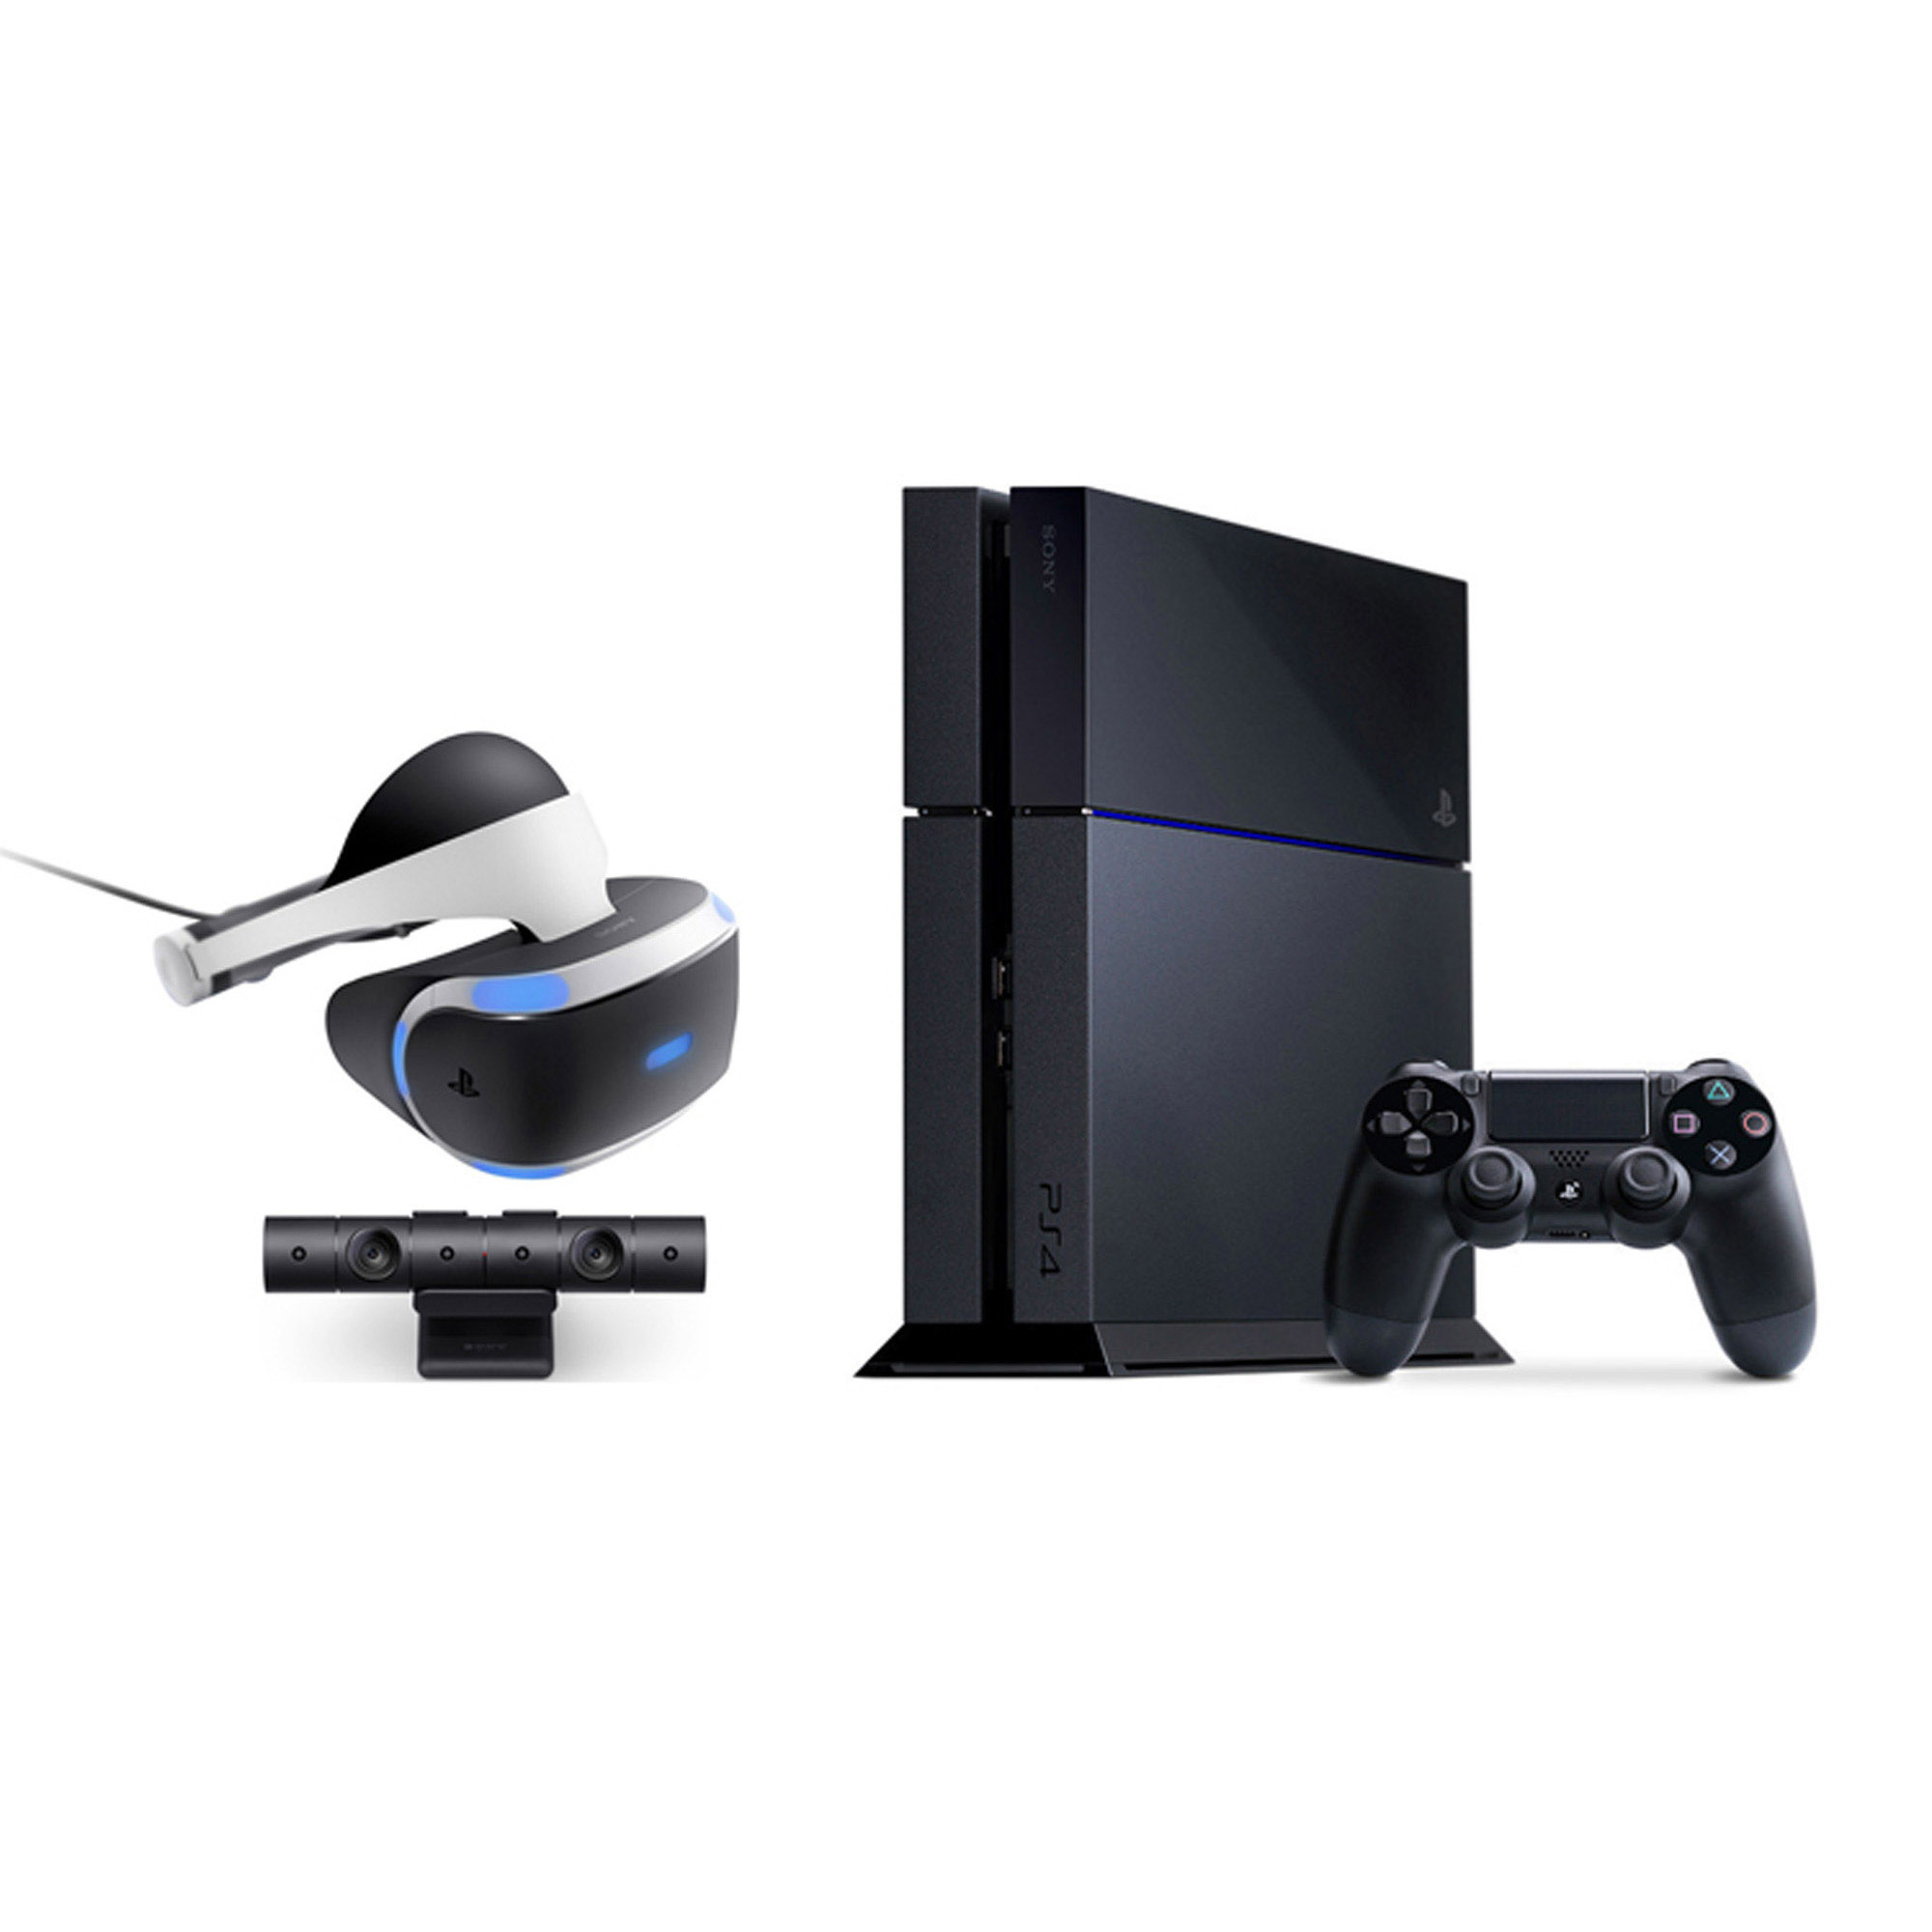 Playstation 4 1TB Console and VR Set